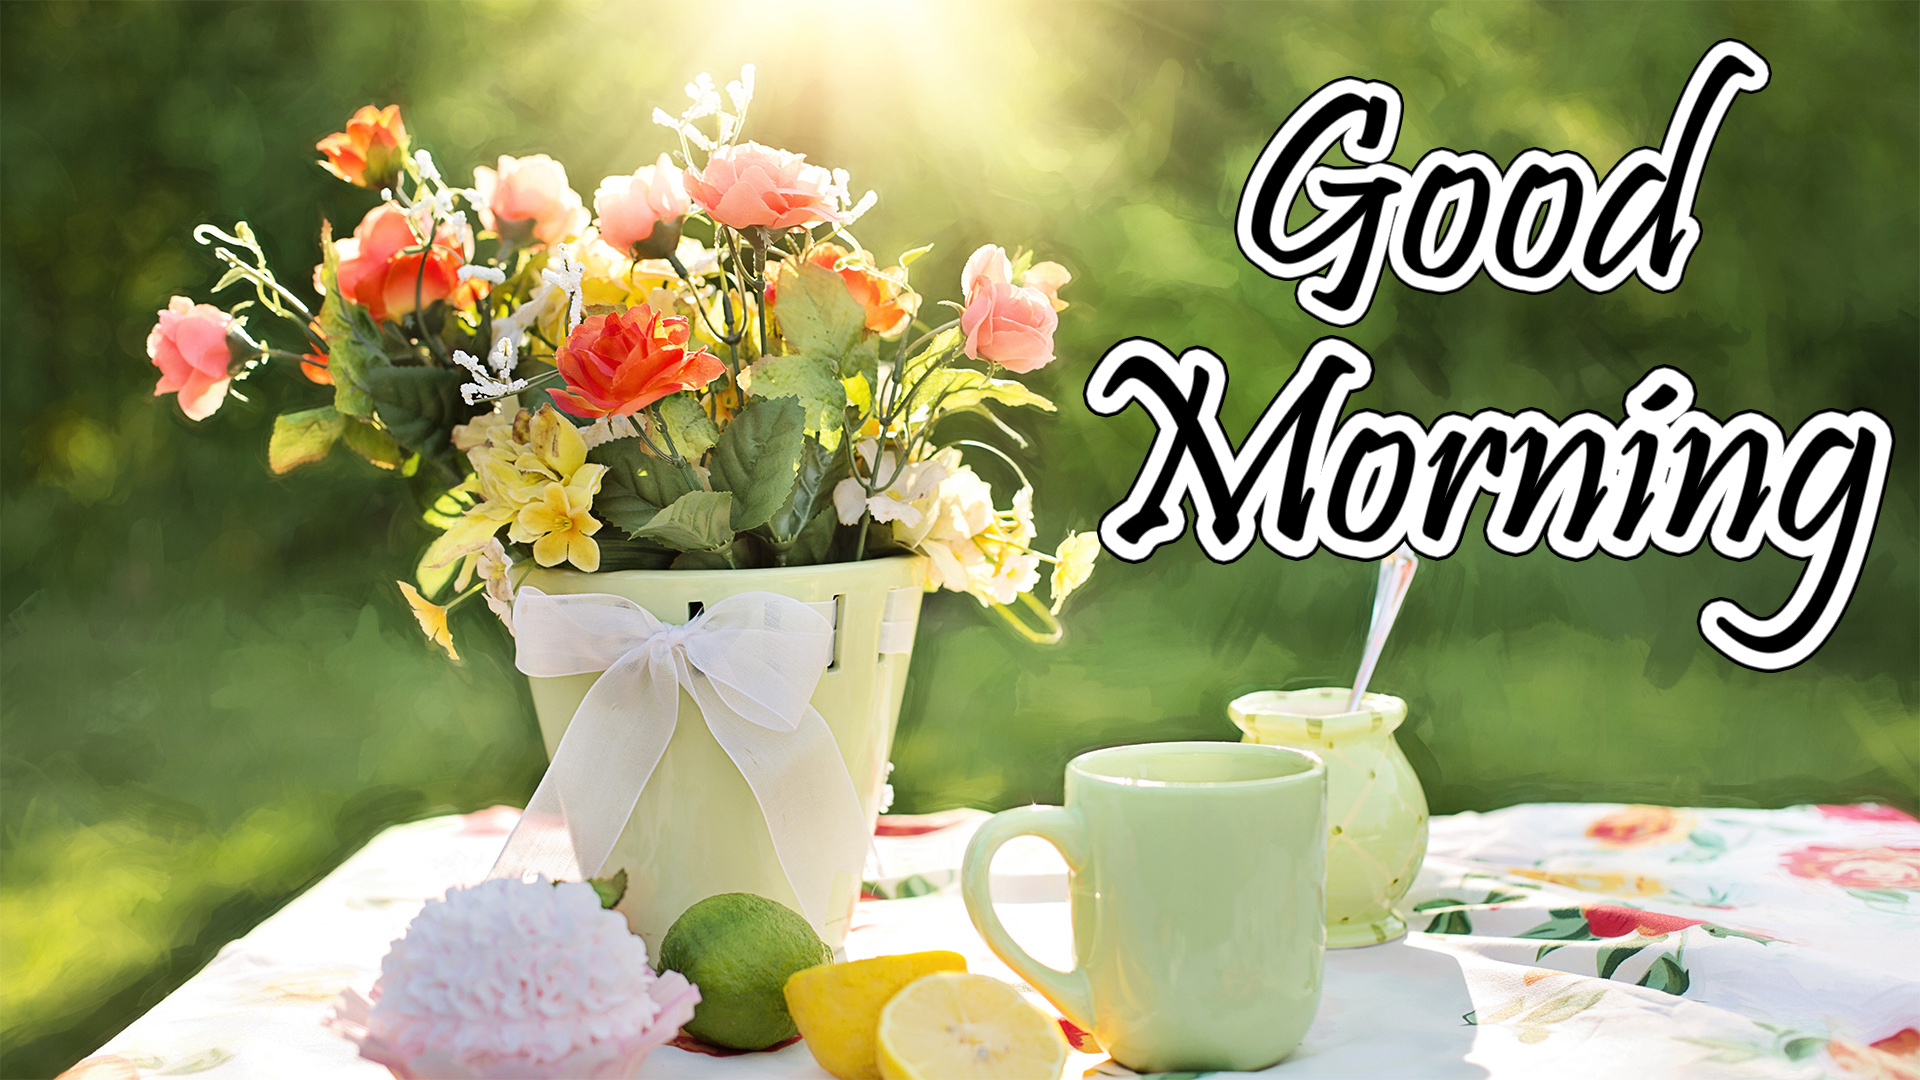 Good Morning Images Pictures Hd Wallpapers Free Download